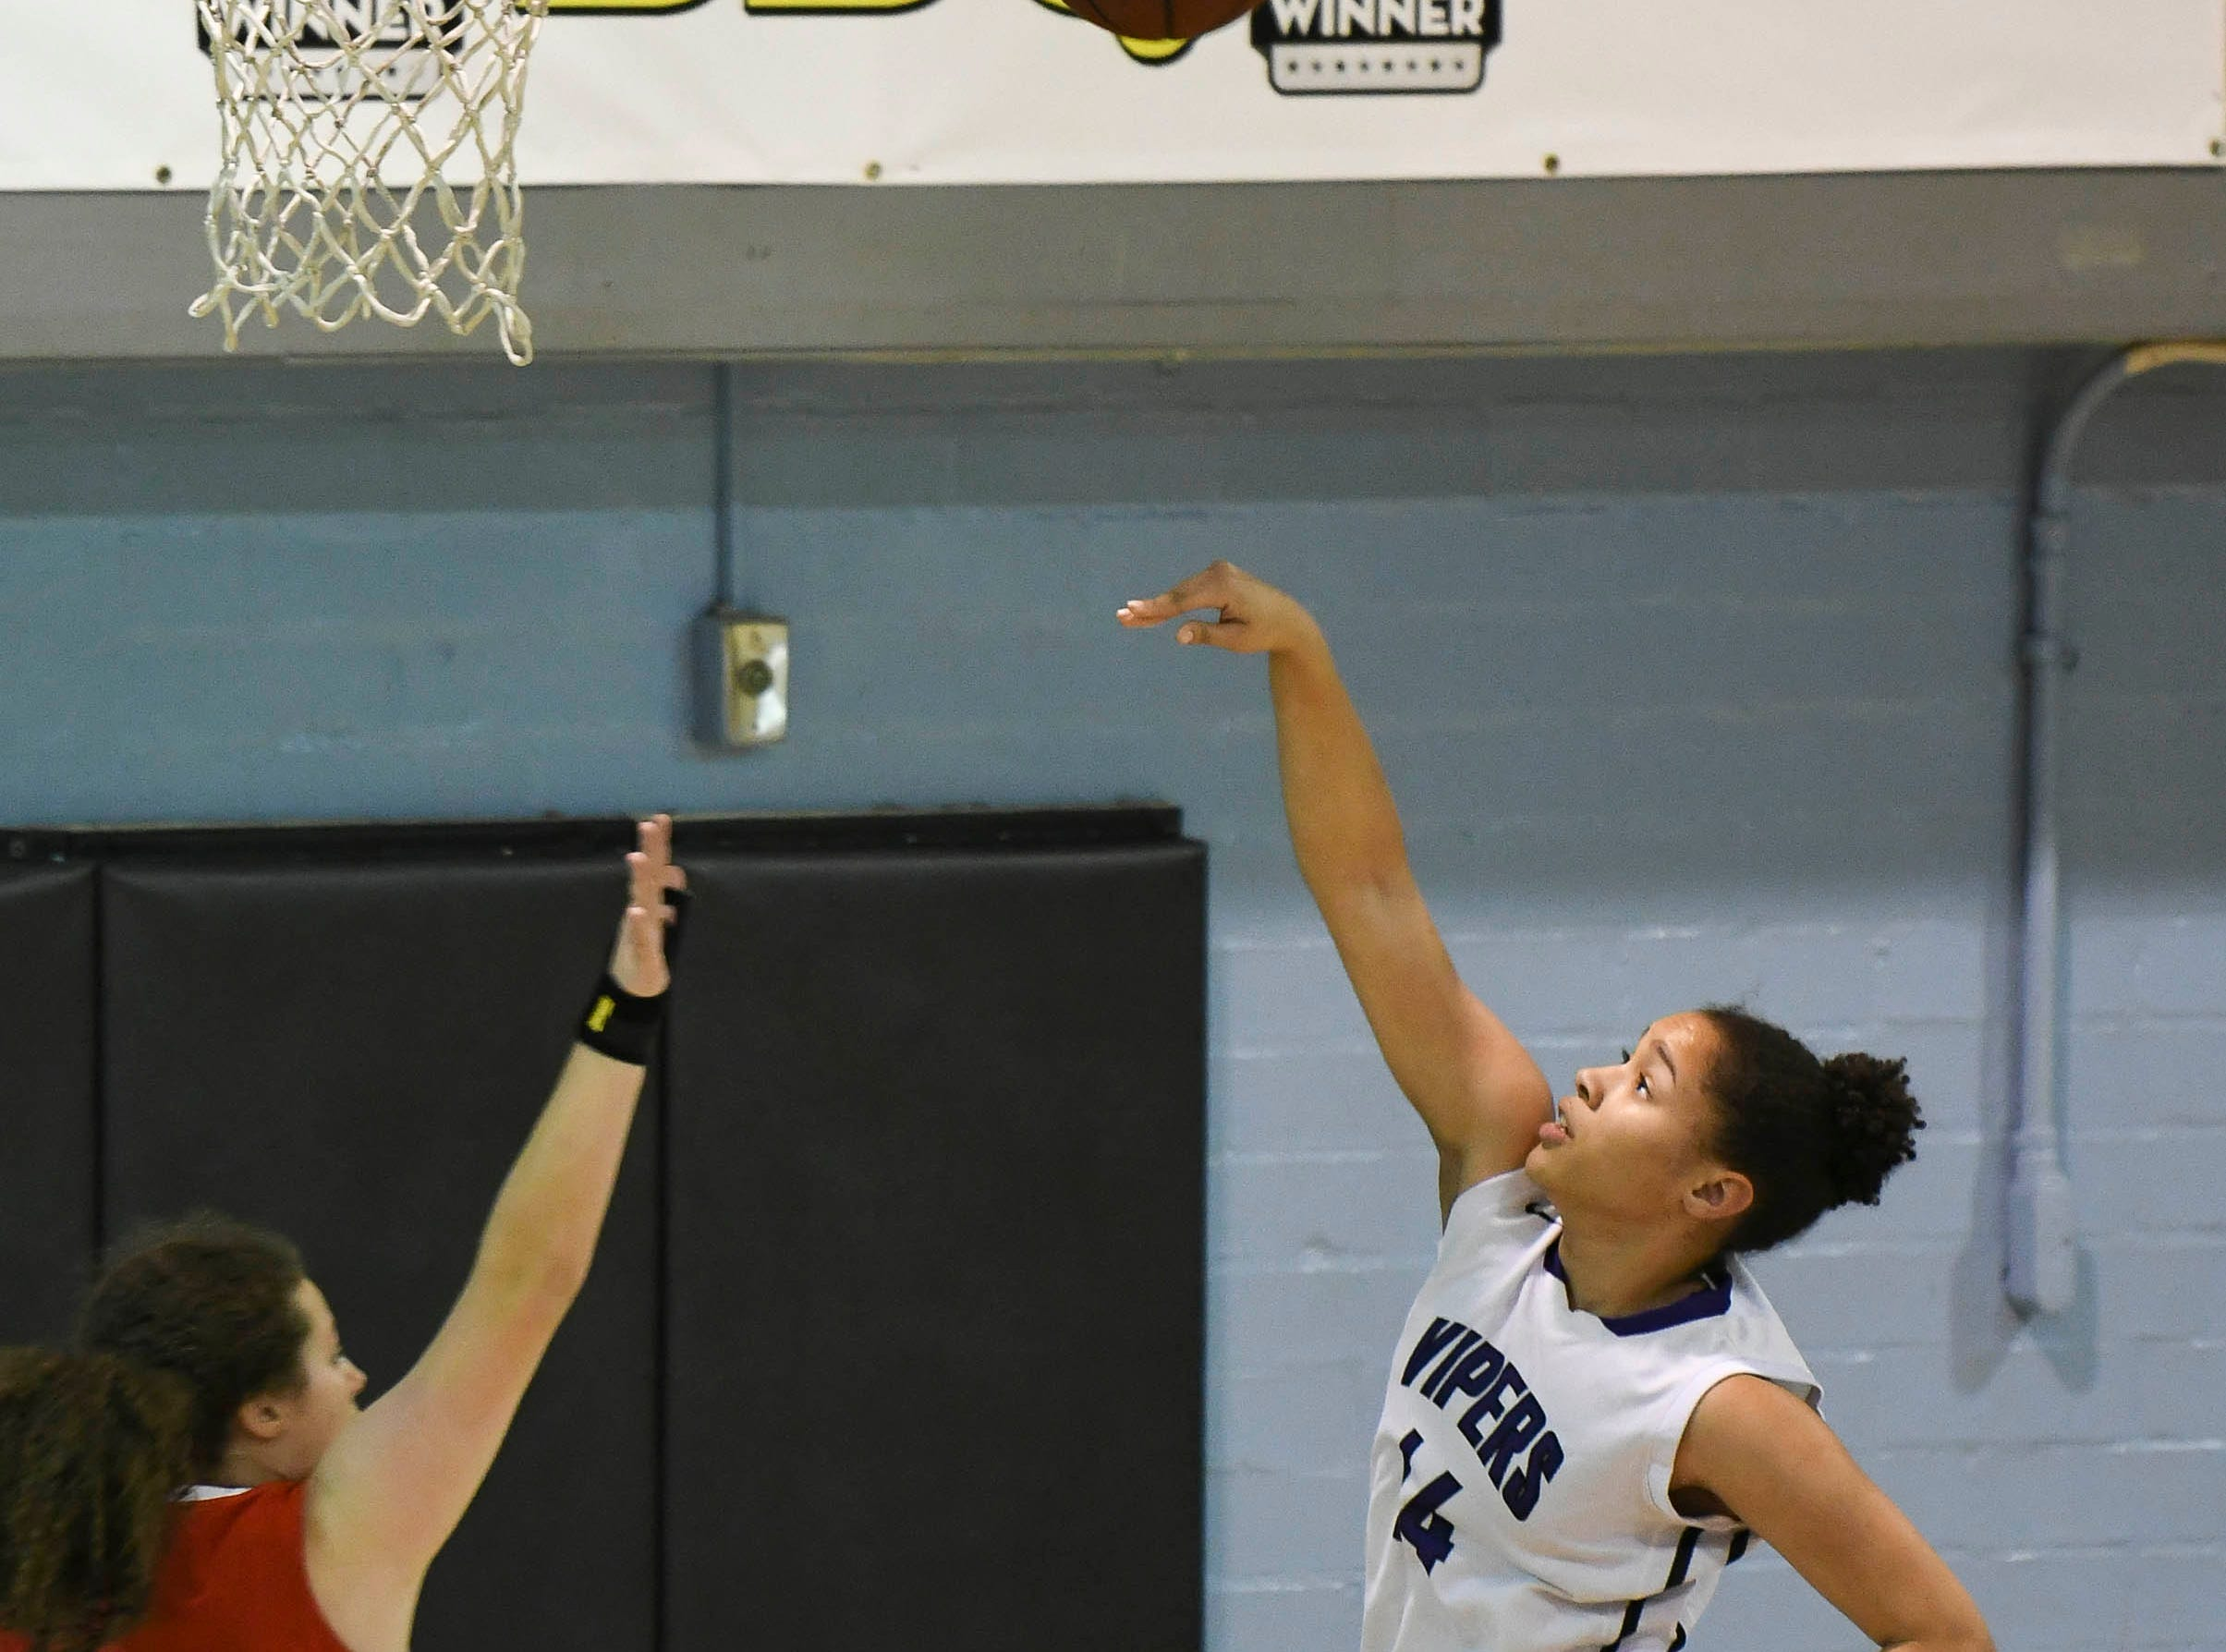 Brianna Bradley of Space Coast takes a shot during Tuesday's district tournament game at Rockledge High